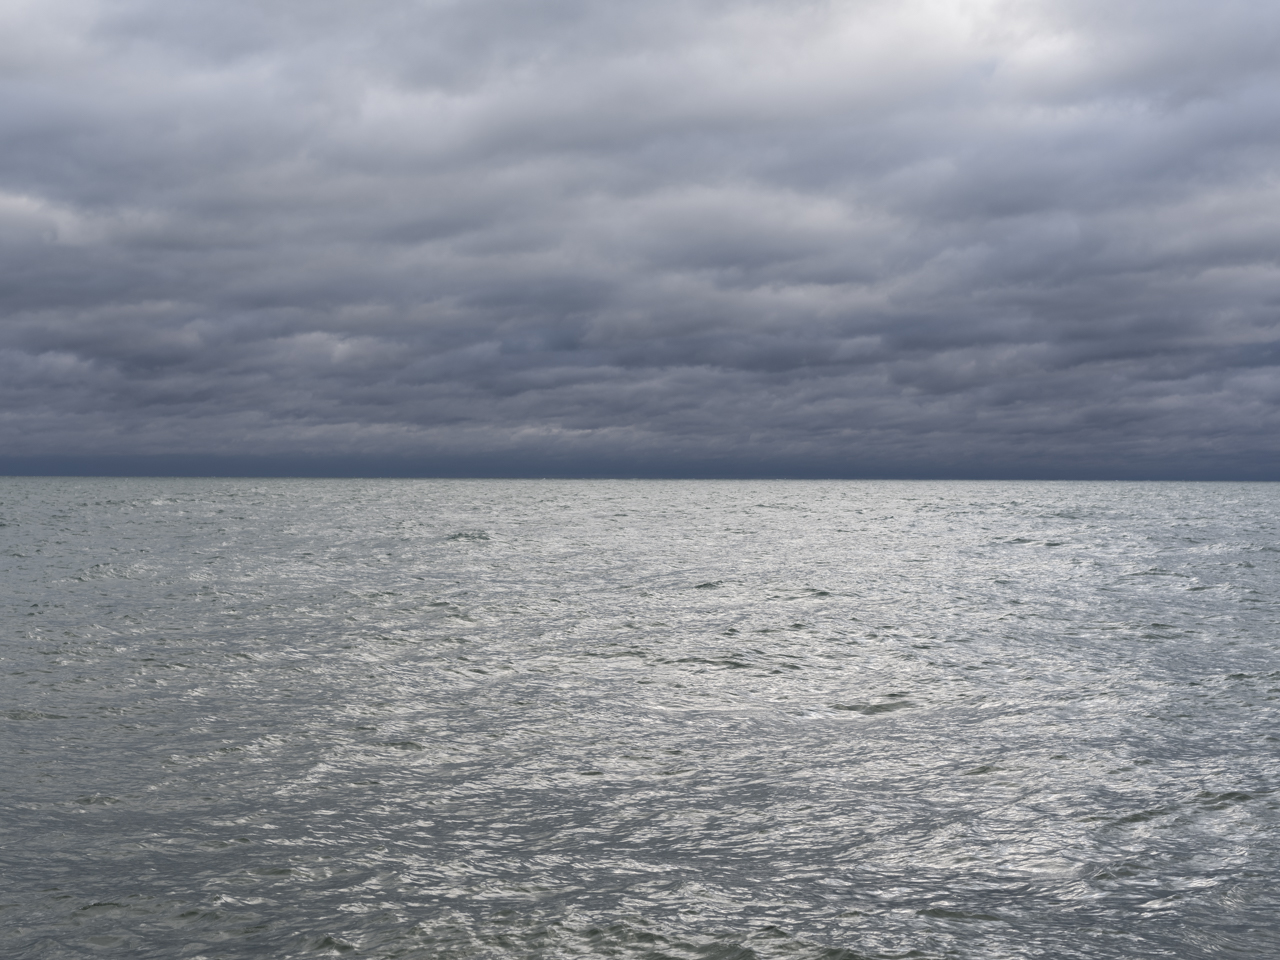 Lake Michigan on a heavily cloudy day with silvery light